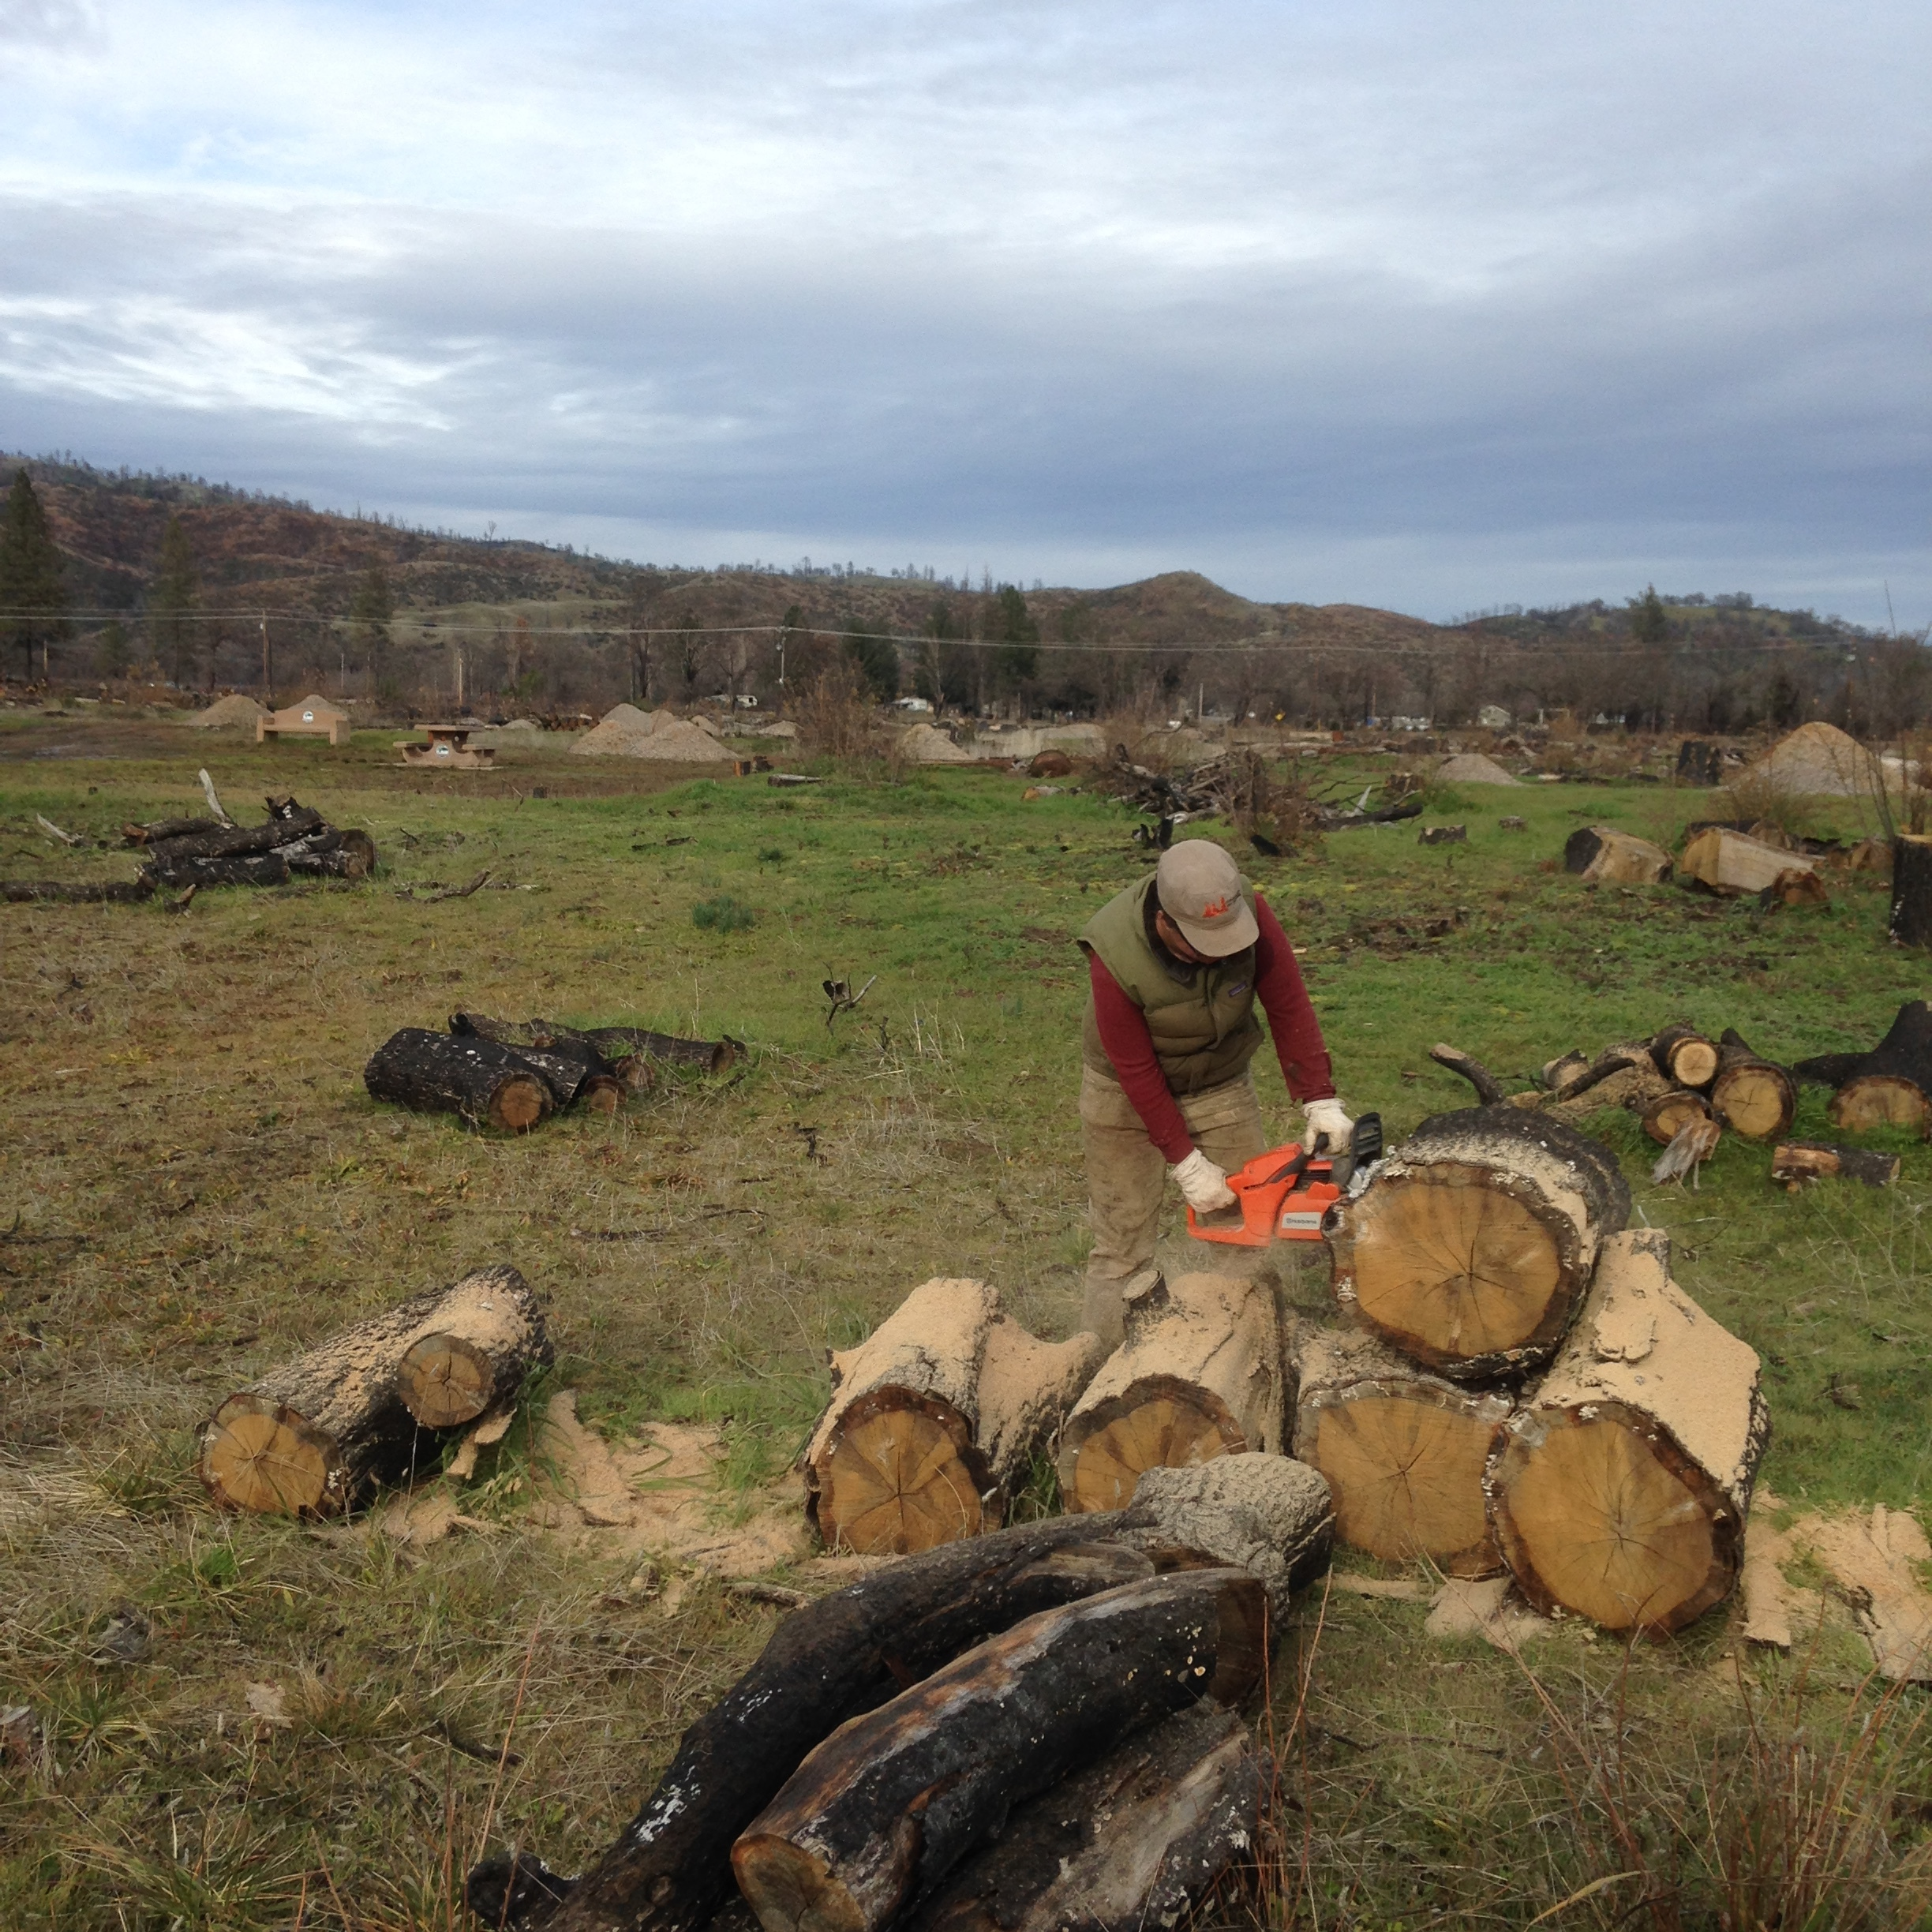 Shasta Krueger cutting up oak that was burned in the Sawmill fire last year. This wood will be used to heat the resident house, studio and in the kilns